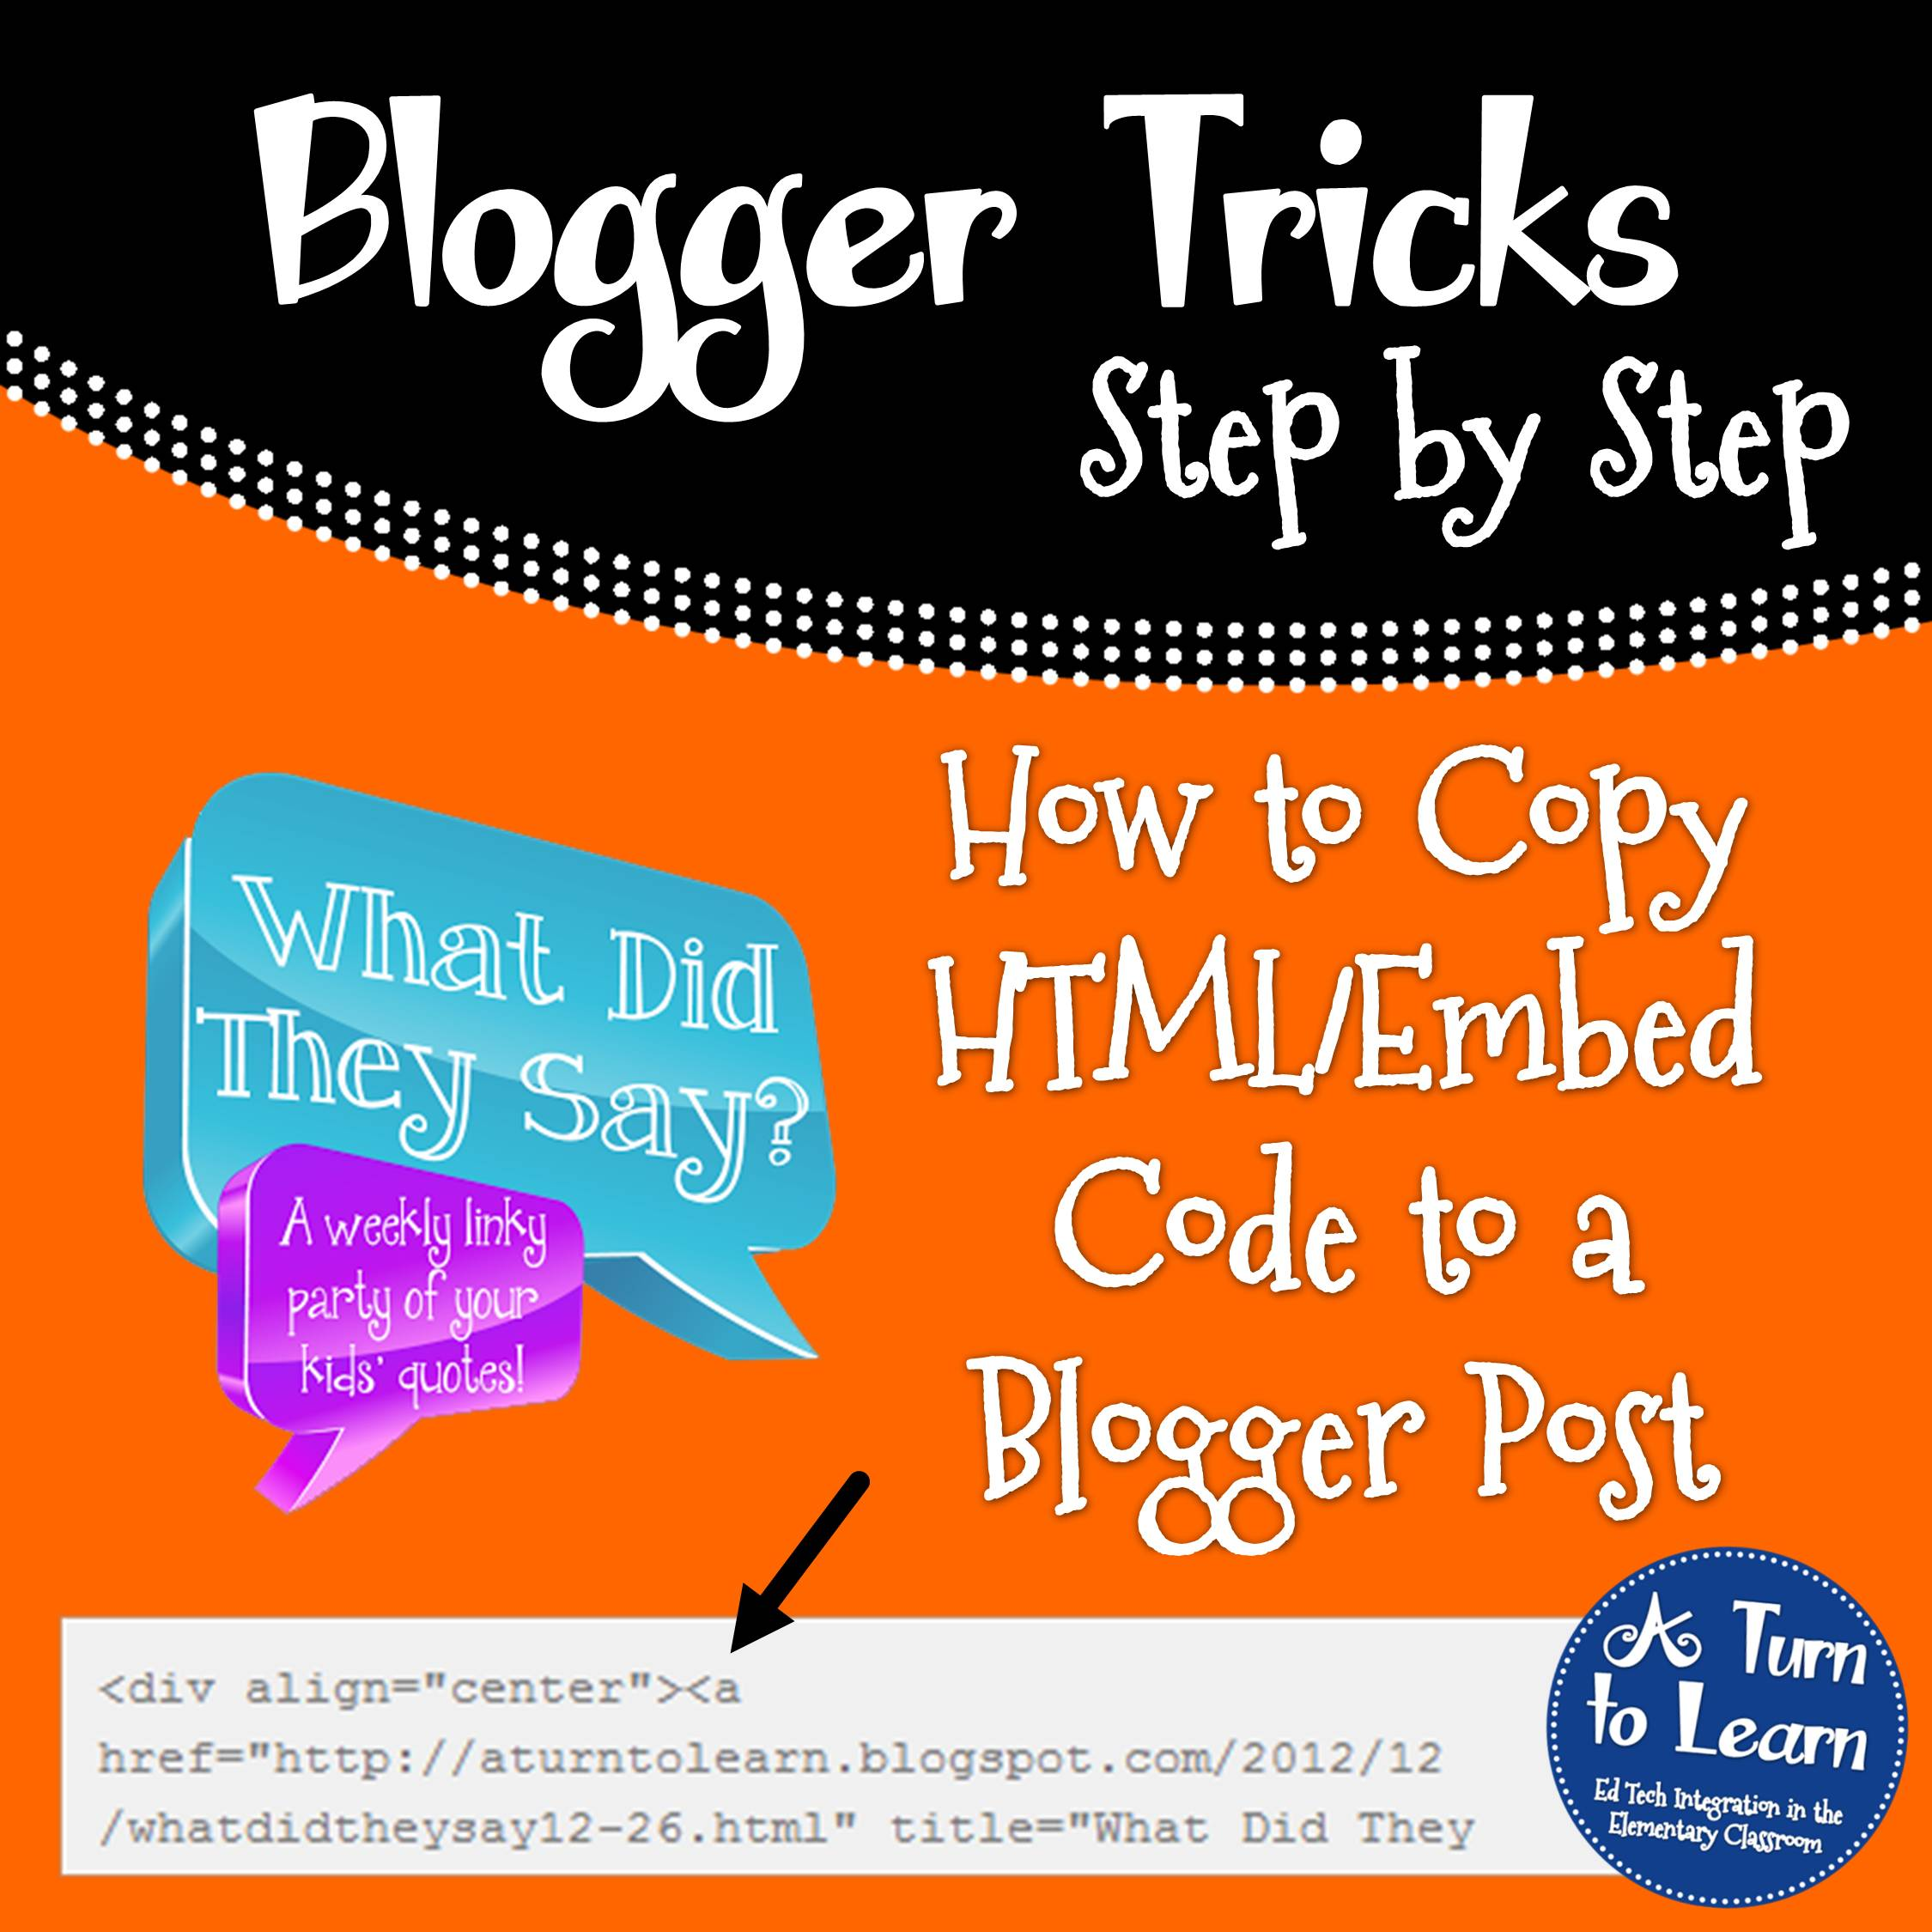 How to Copy HTML/Embed Code to Your Blog! • A Turn to Learn